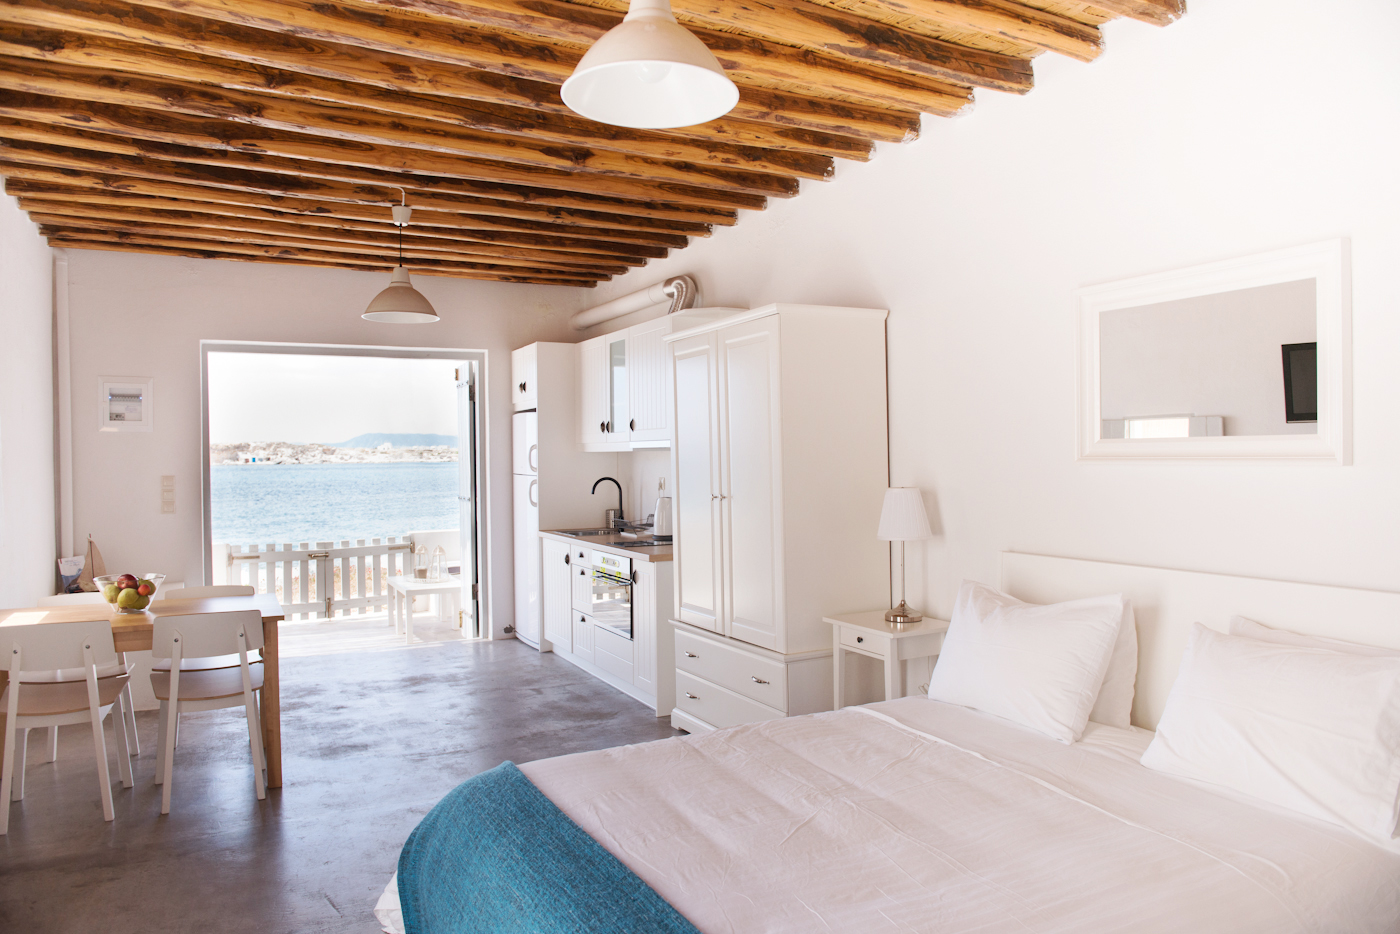 ThePerfectHideaway_Thalassa Beach House02.JPG